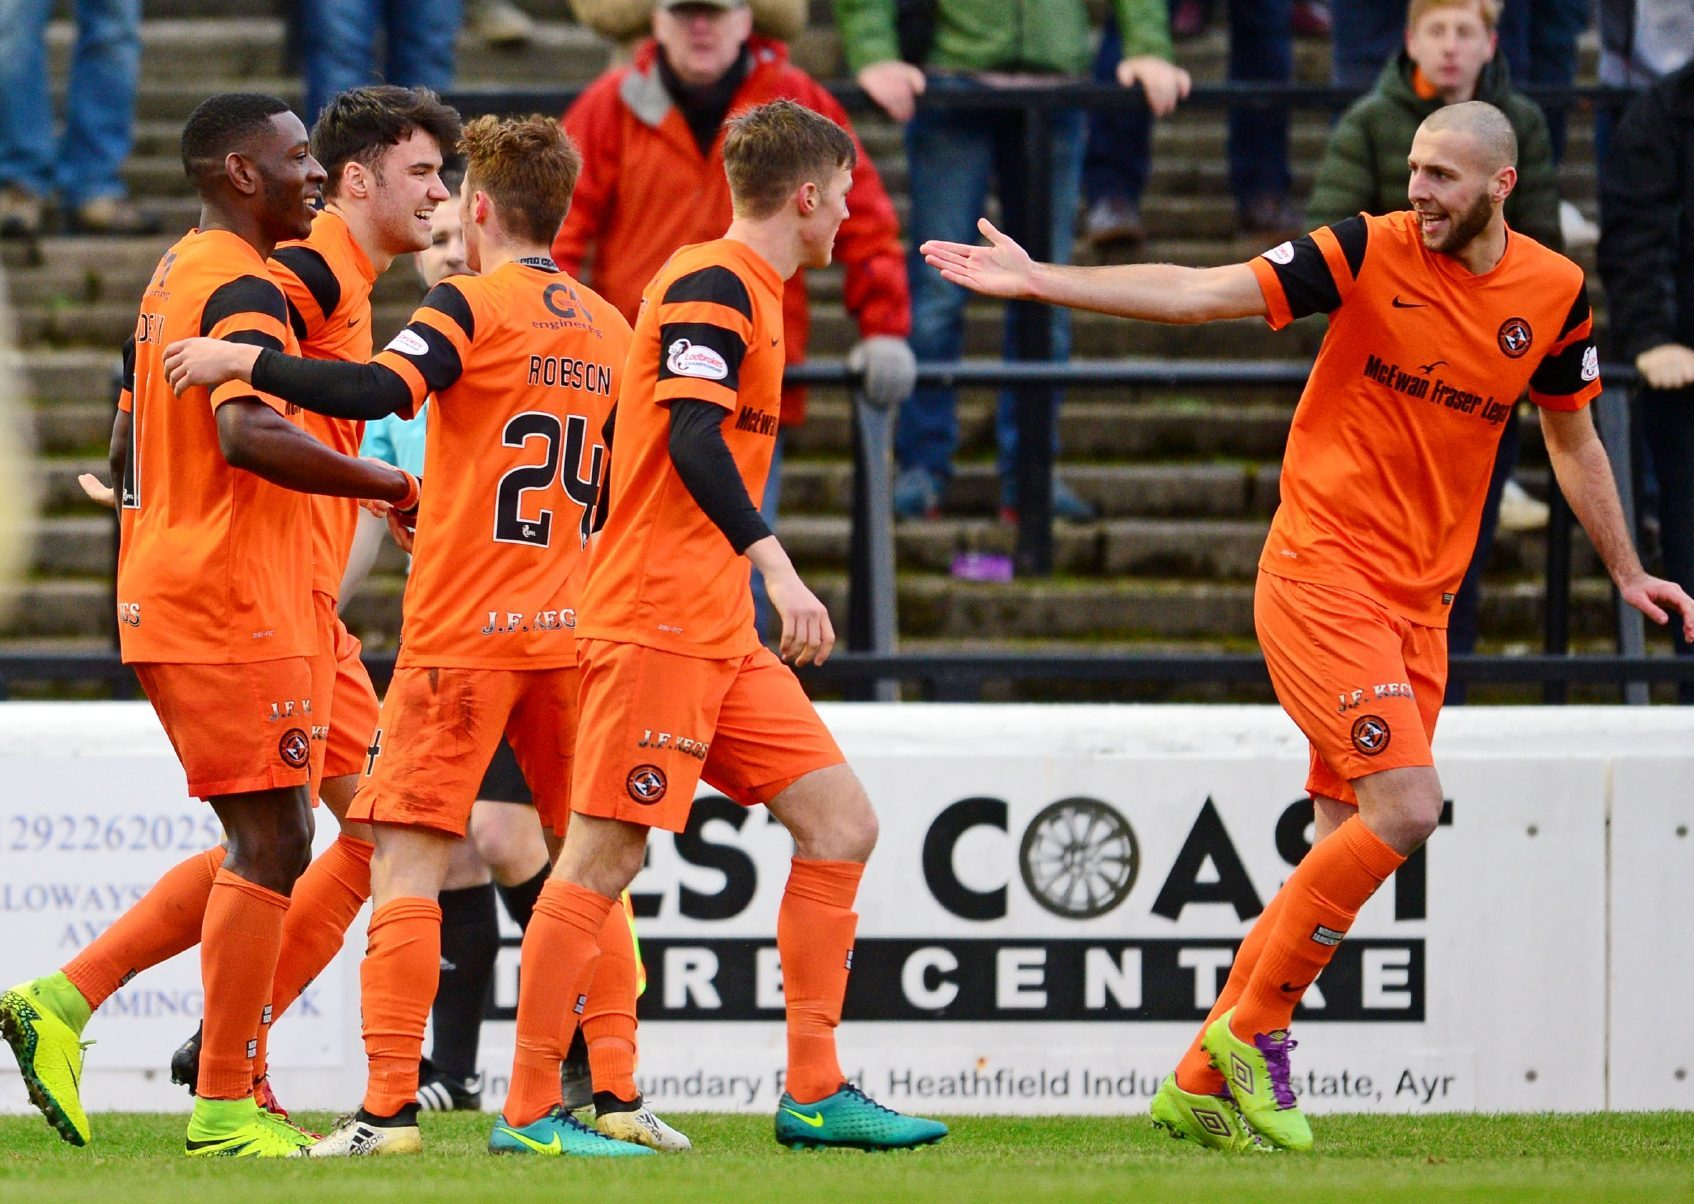 Tope Obadeyi (left) and his colleagues celebrate his goal.